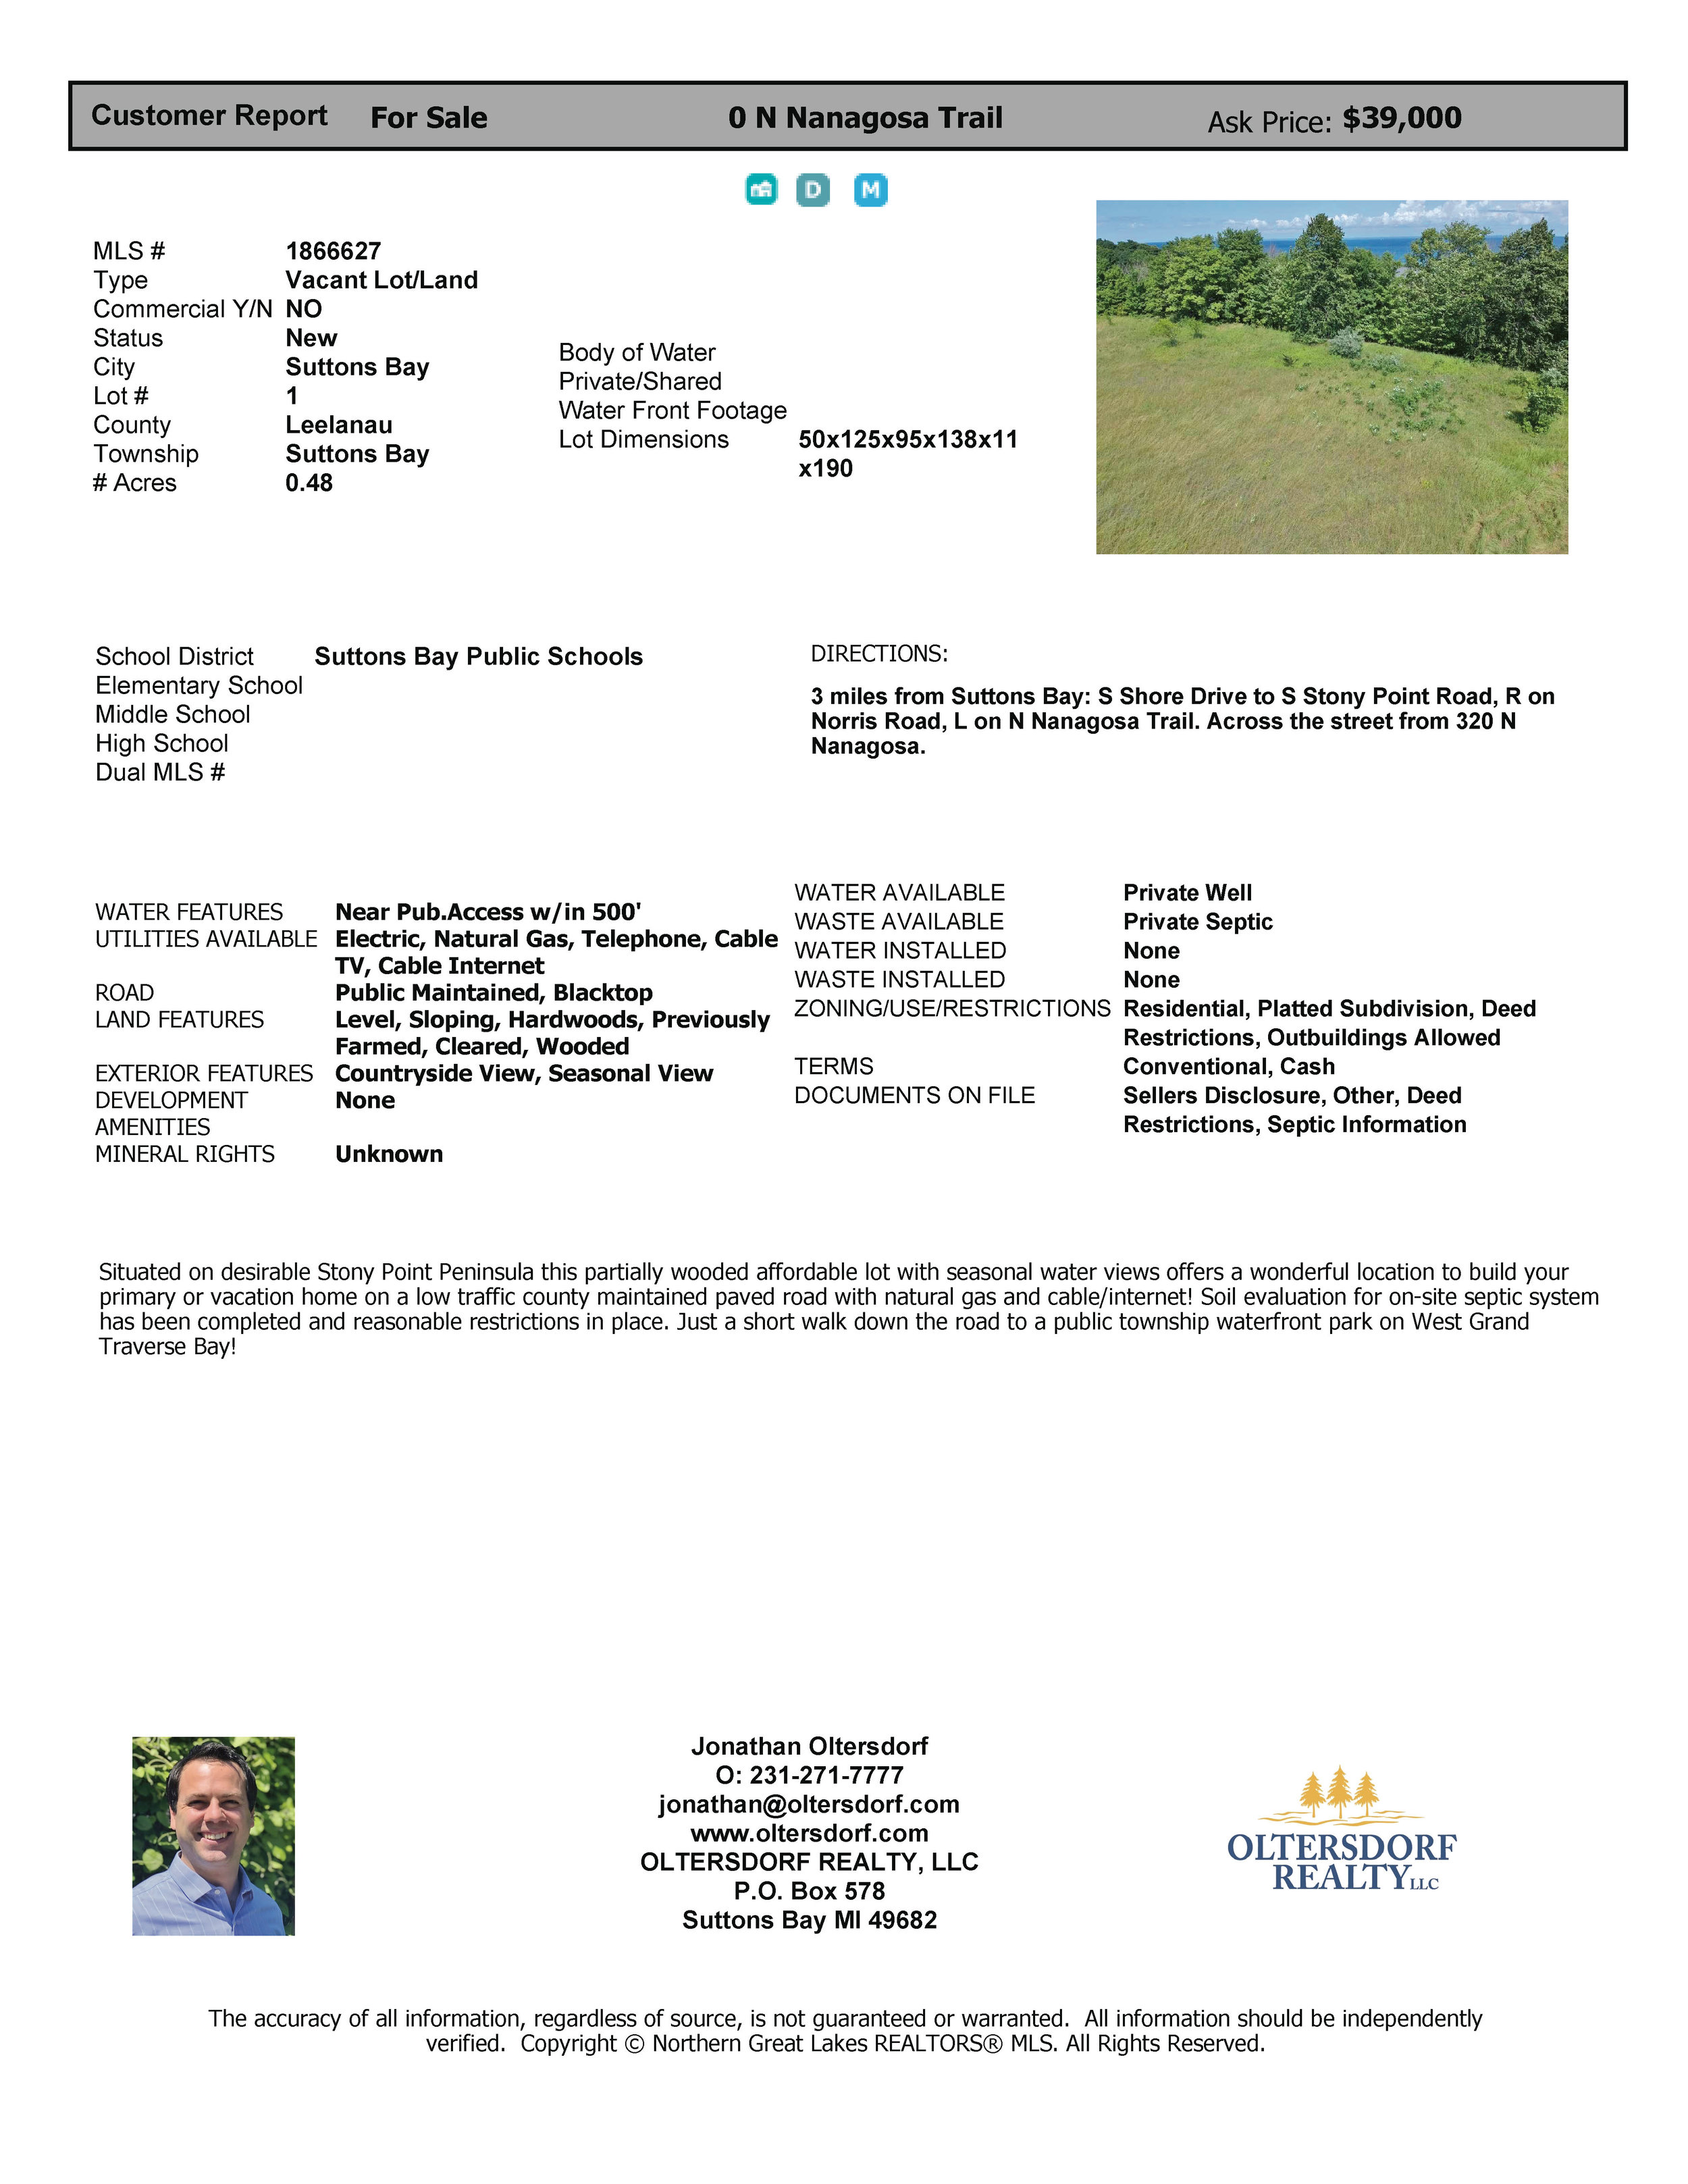 N Nanagosa Trail, Suttons Bay, MI - ~0.48 Acre Vacant Parcel on Stony Point near Water Access - Marketing Packet (1).jpg